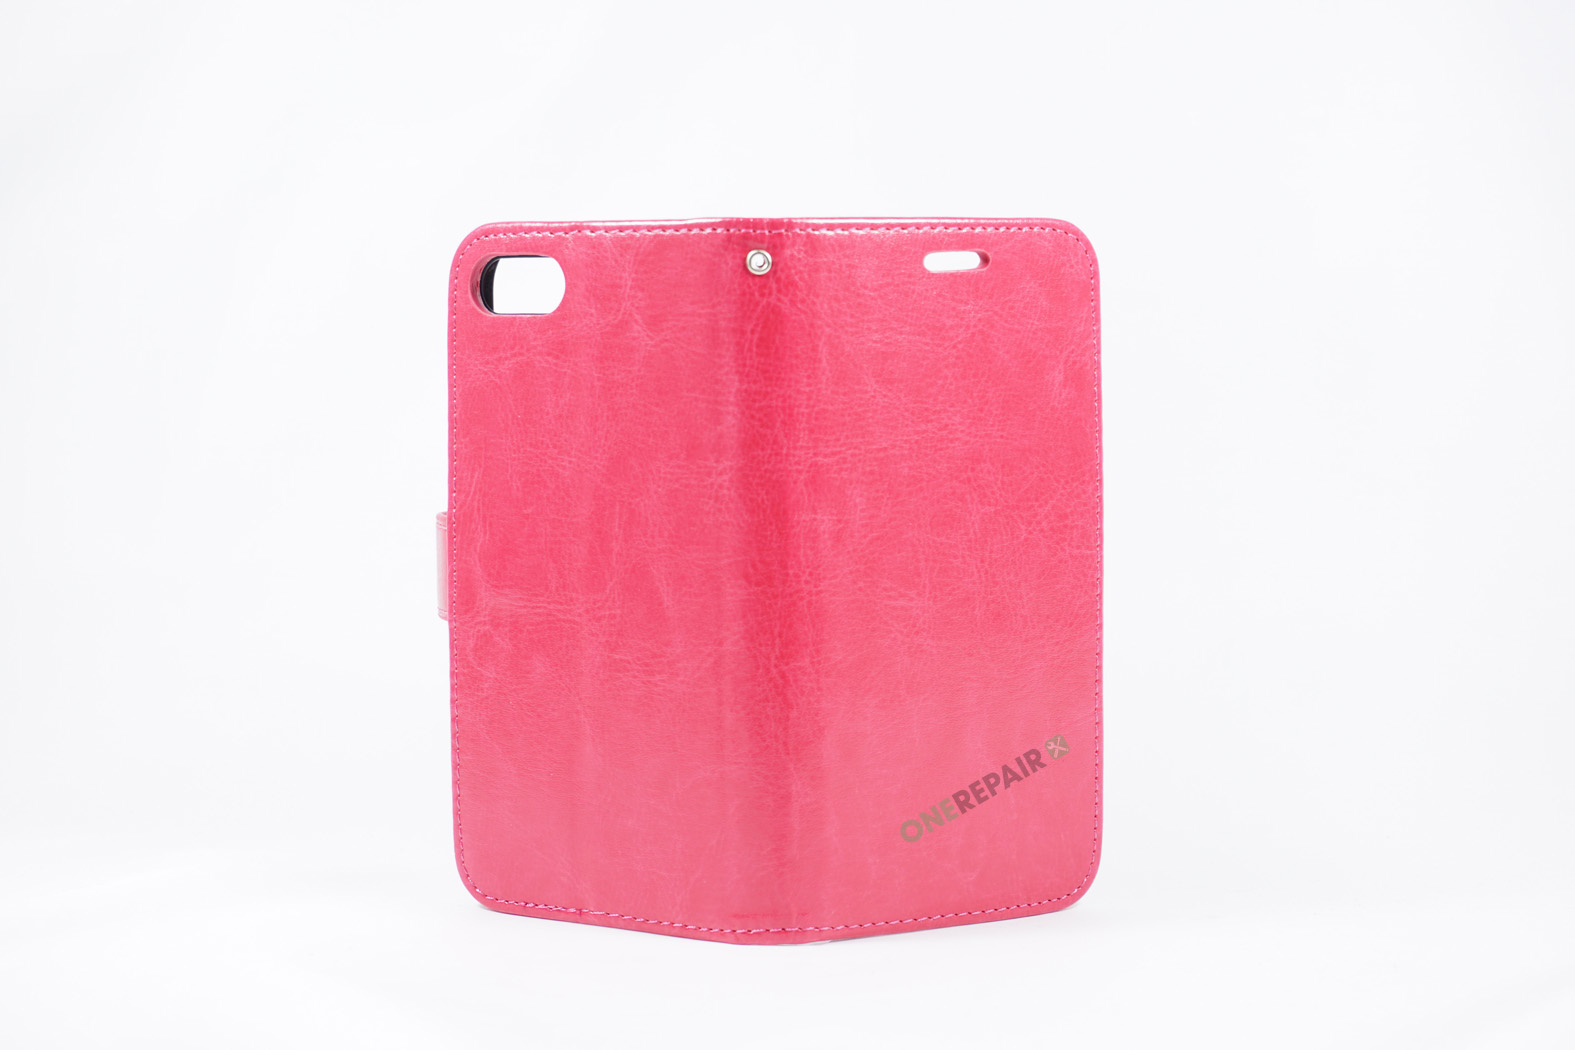 351834_iPhone_7_8_Flipcover_Classic_Cover_Lyseroed_Pink_OneRepair_WM_00003